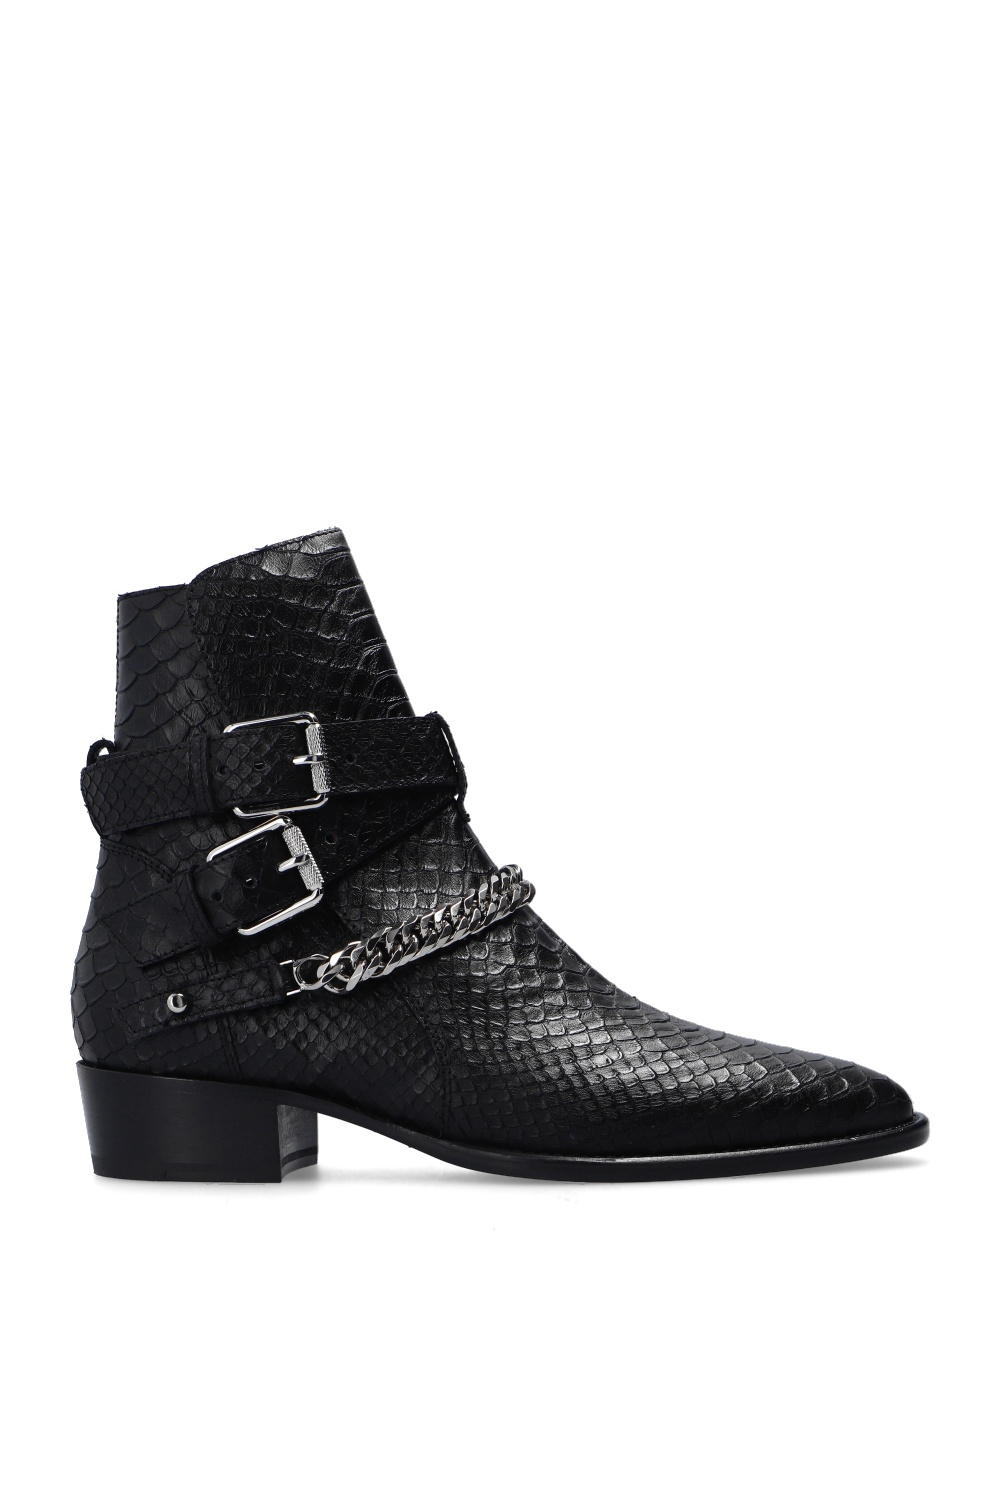 Amiri Leather ankle boots